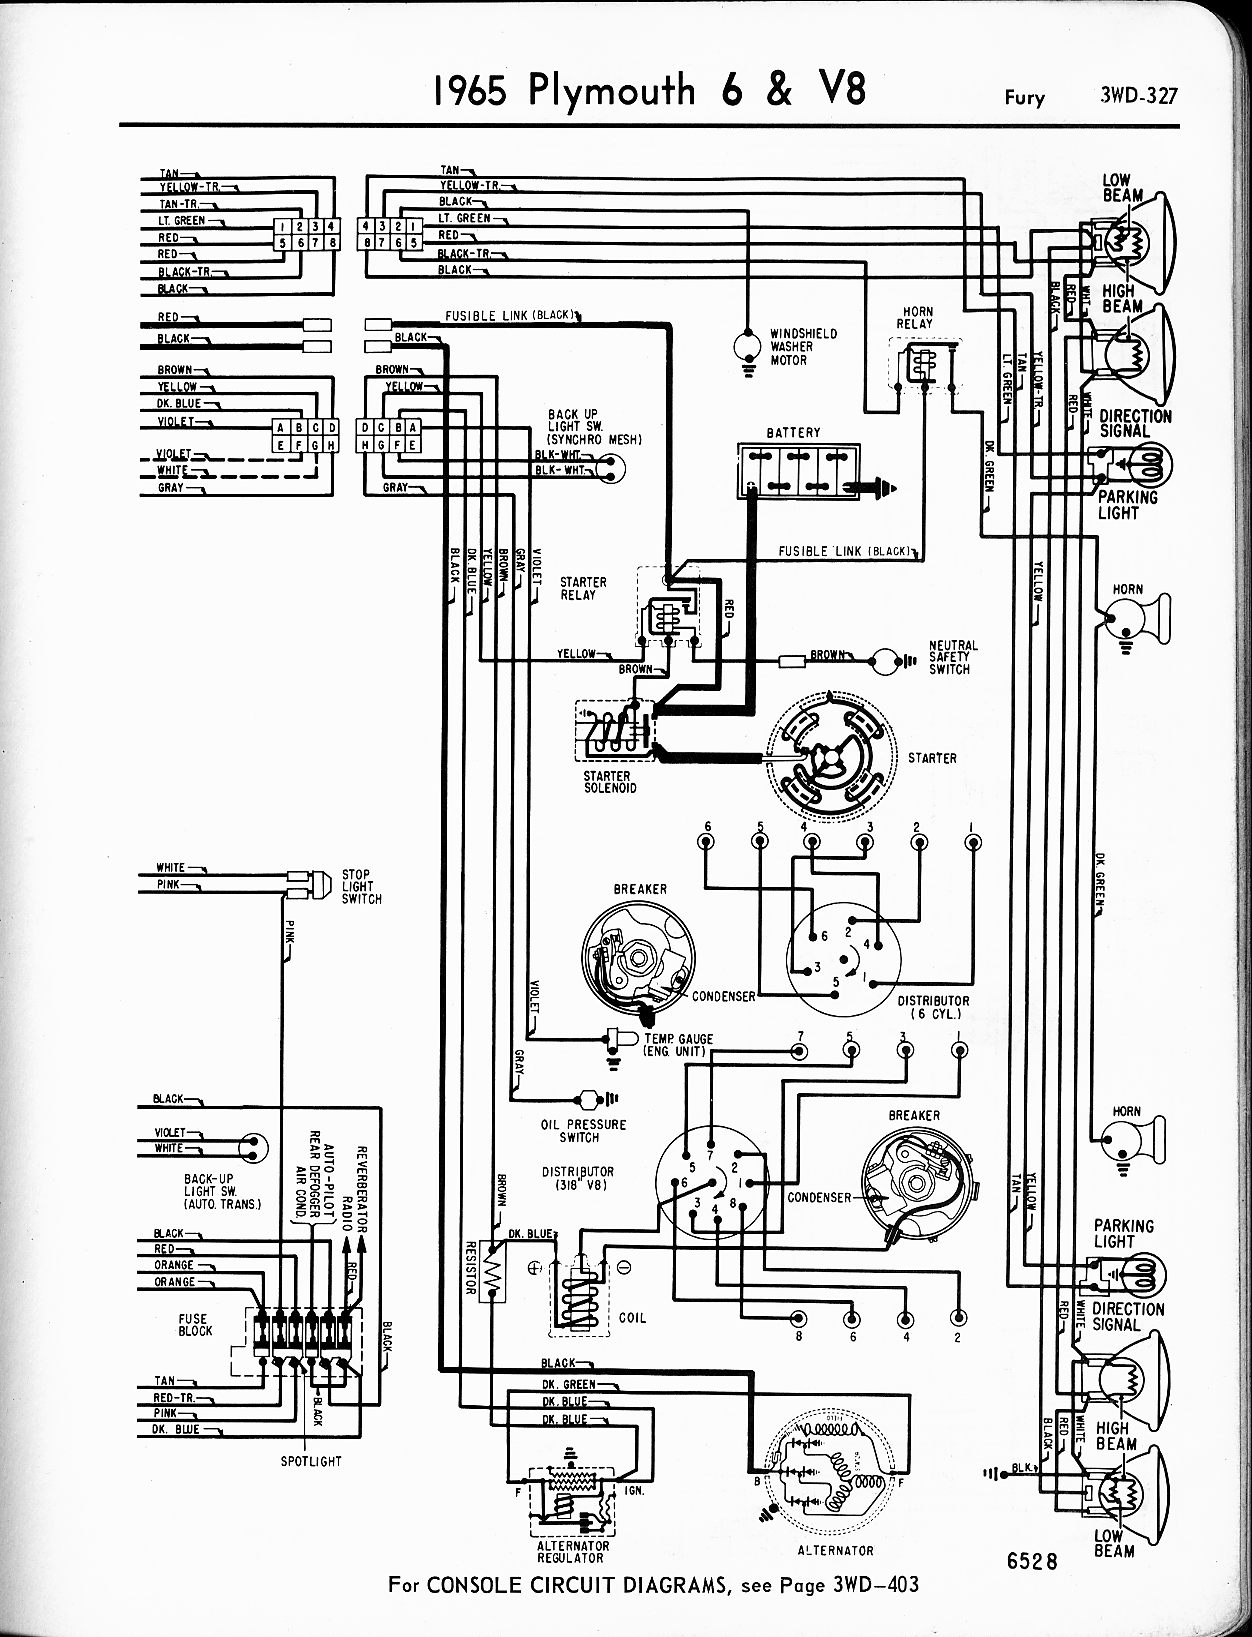 wiring diagrams for 1966 plymouth get free image about wiring wire rh linxglobal co 1965 Plymouth Barracuda Interior 1964 Plymouth Barracuda